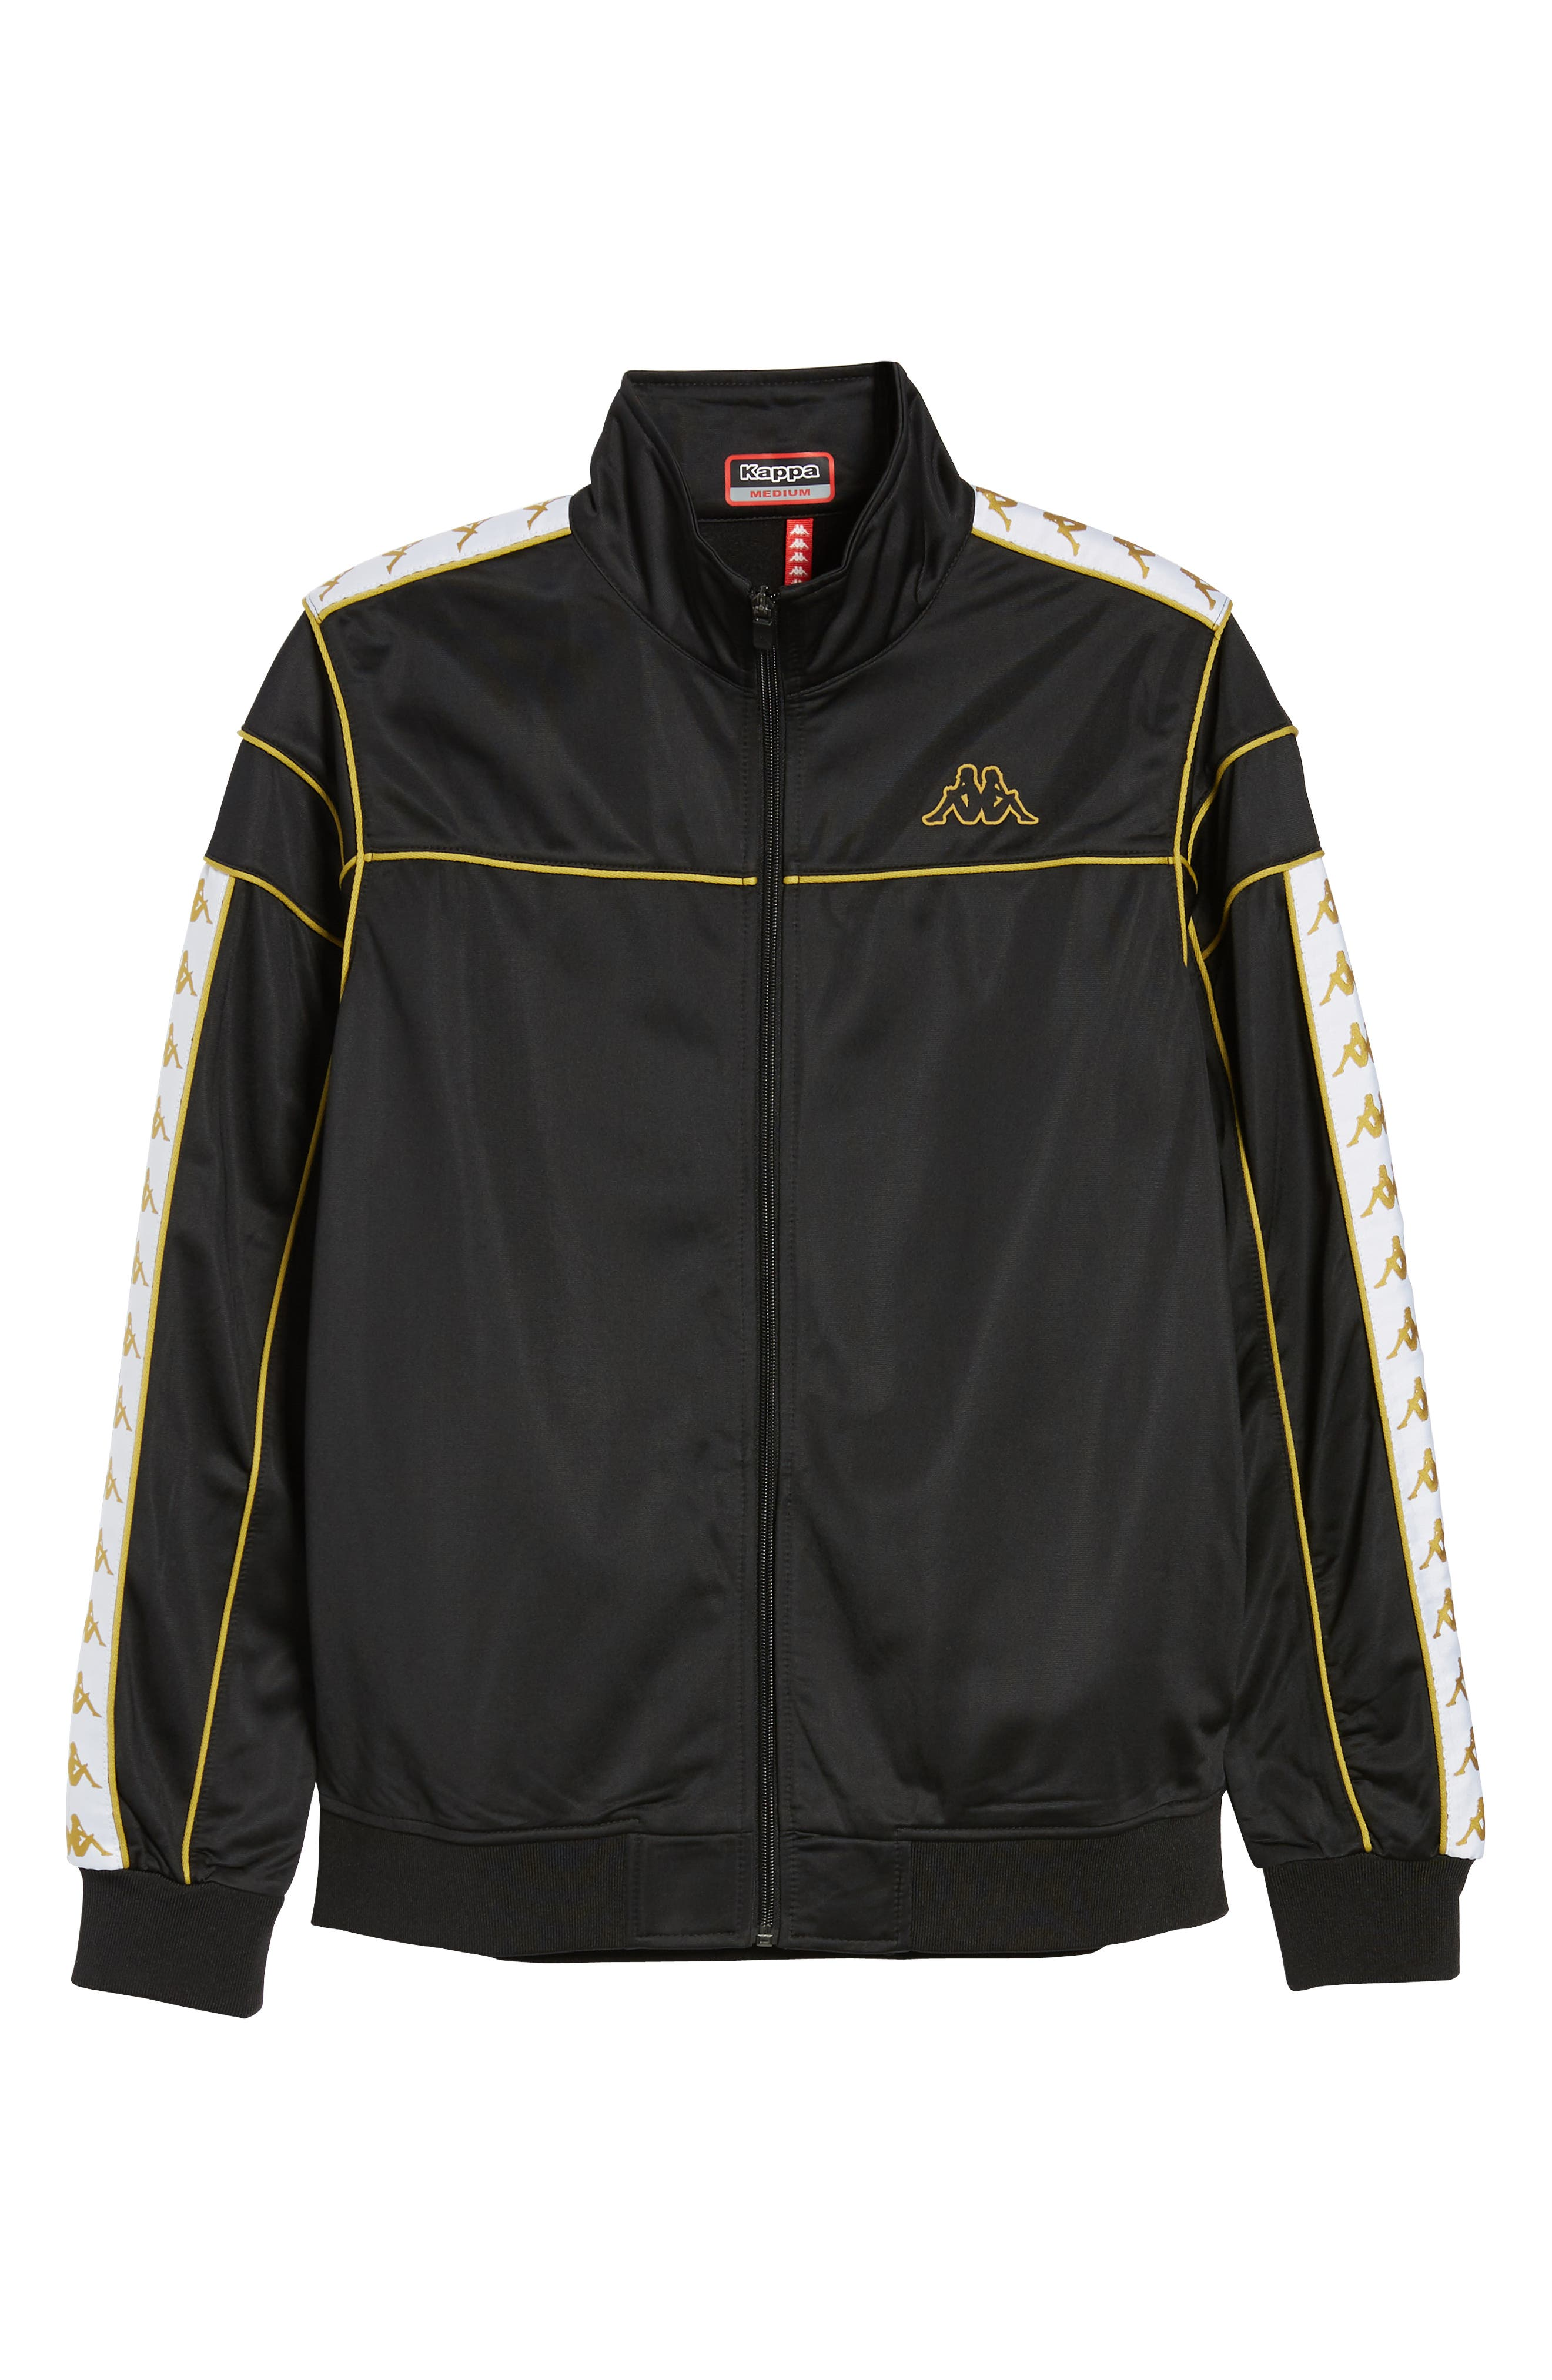 Racing Track Jacket,                             Alternate thumbnail 6, color,                             Black/ White Gold